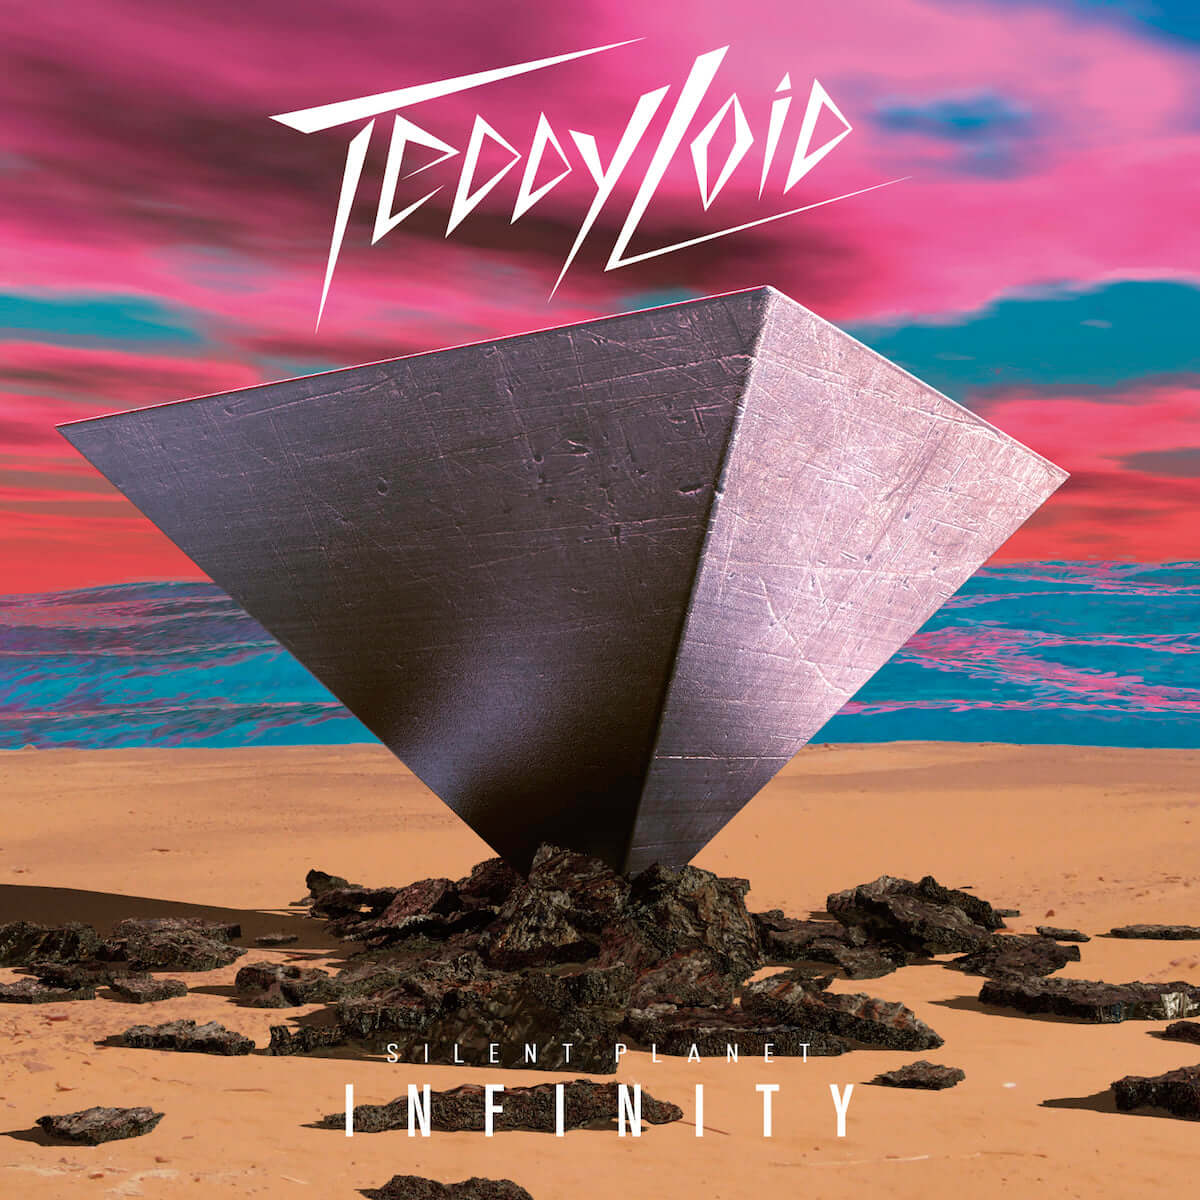 TEDDYLOID – SILENT PLANET – INFINITY